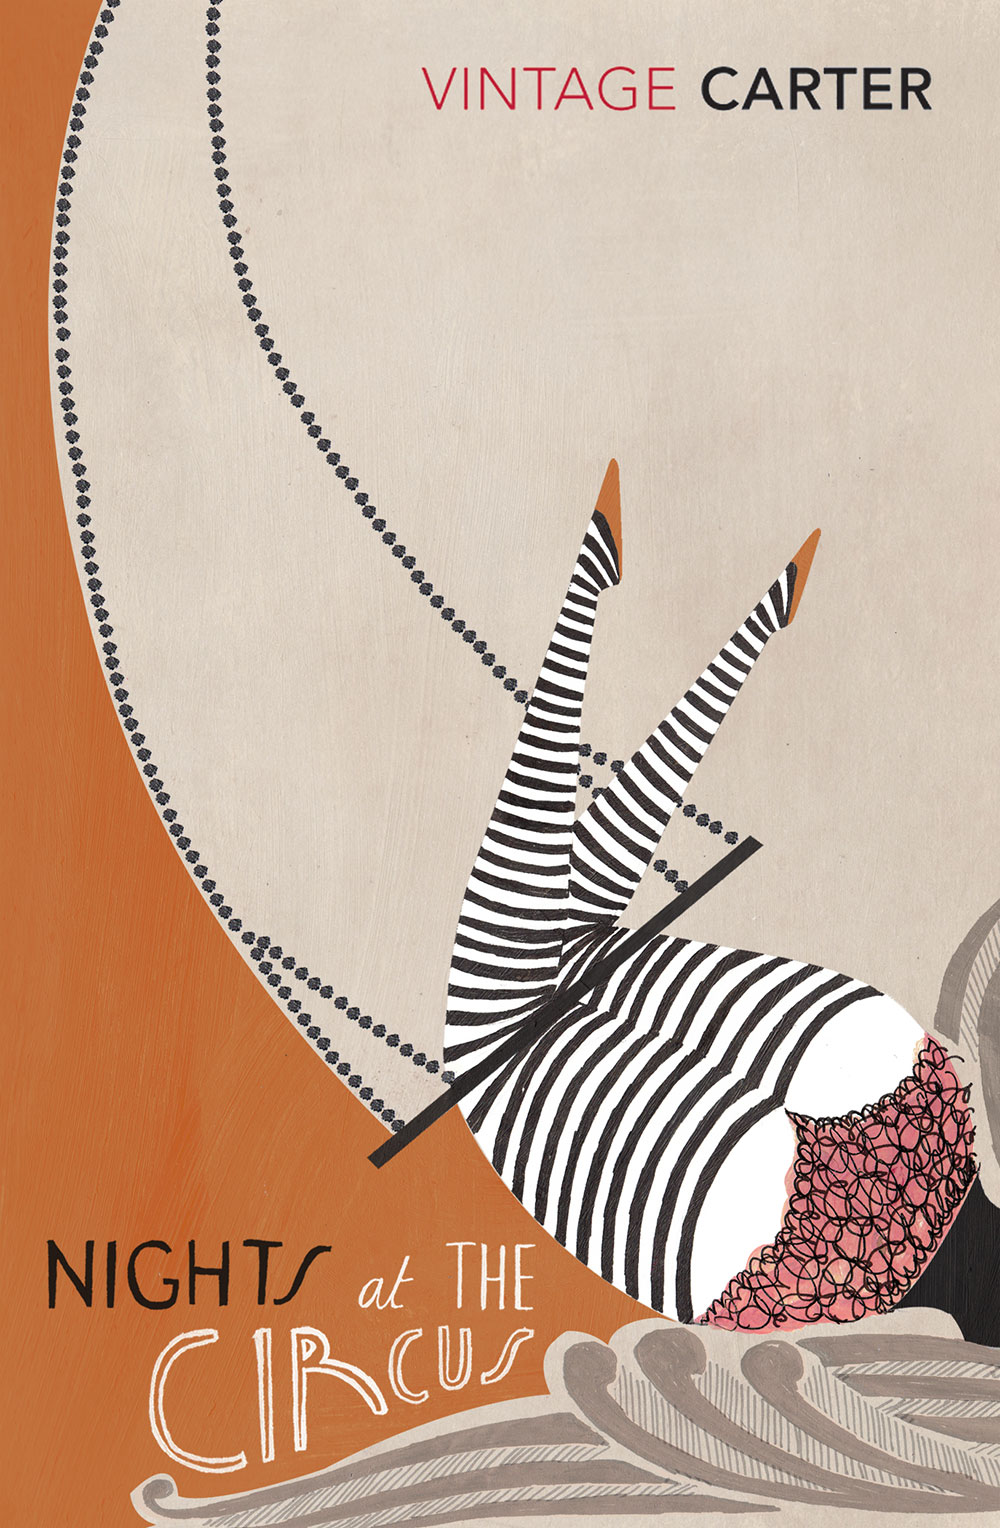 Nights-at-the-circus-by-Sara-Mulvanny.jpg